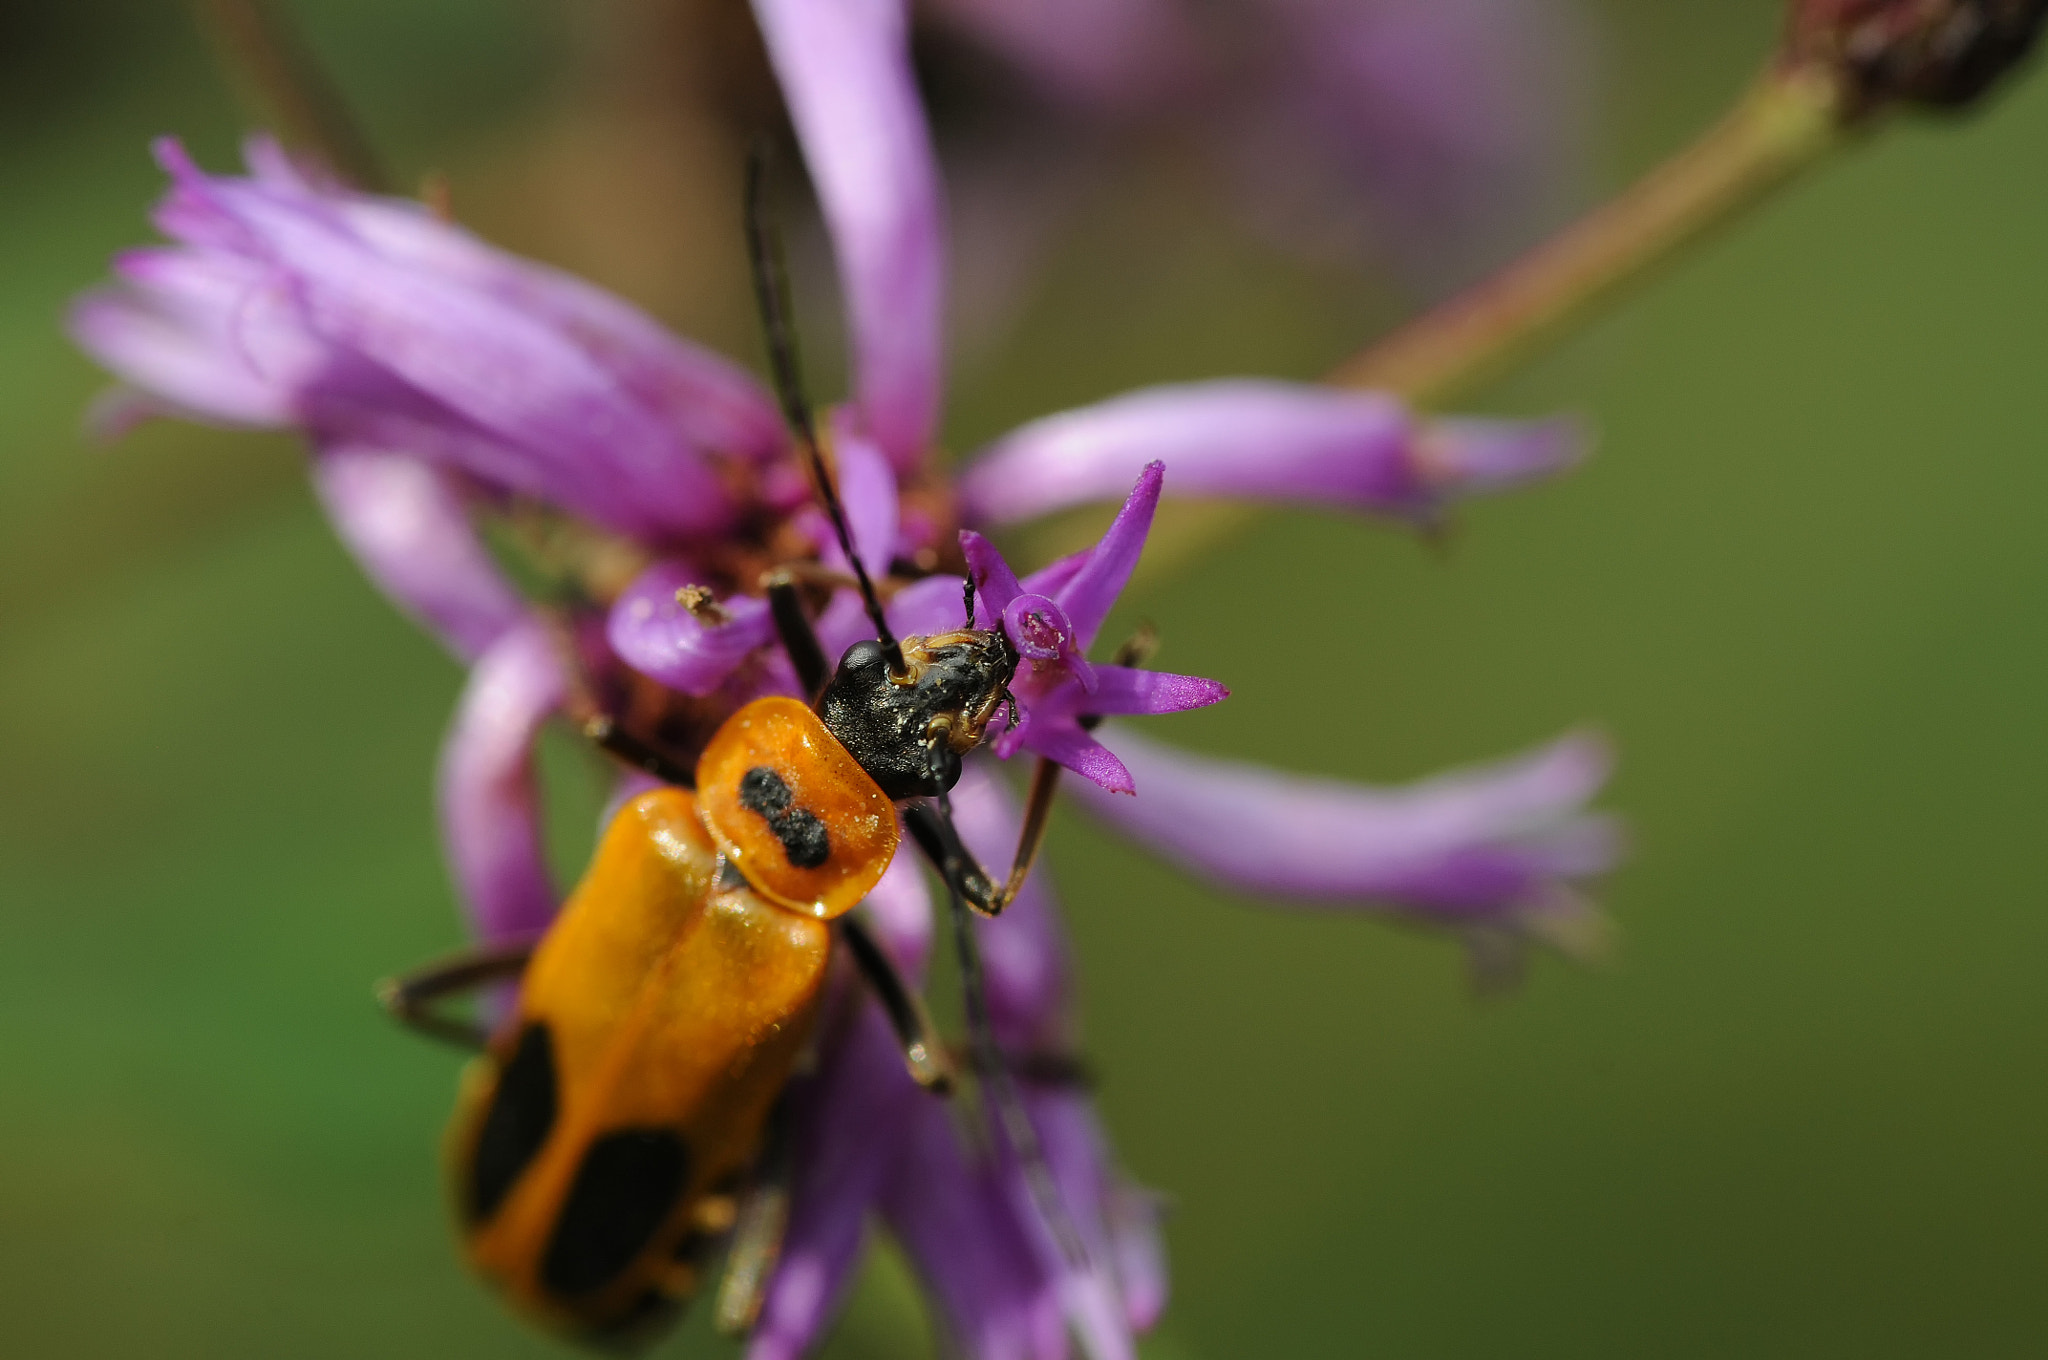 Photograph bug by Mark Kantner on 500px